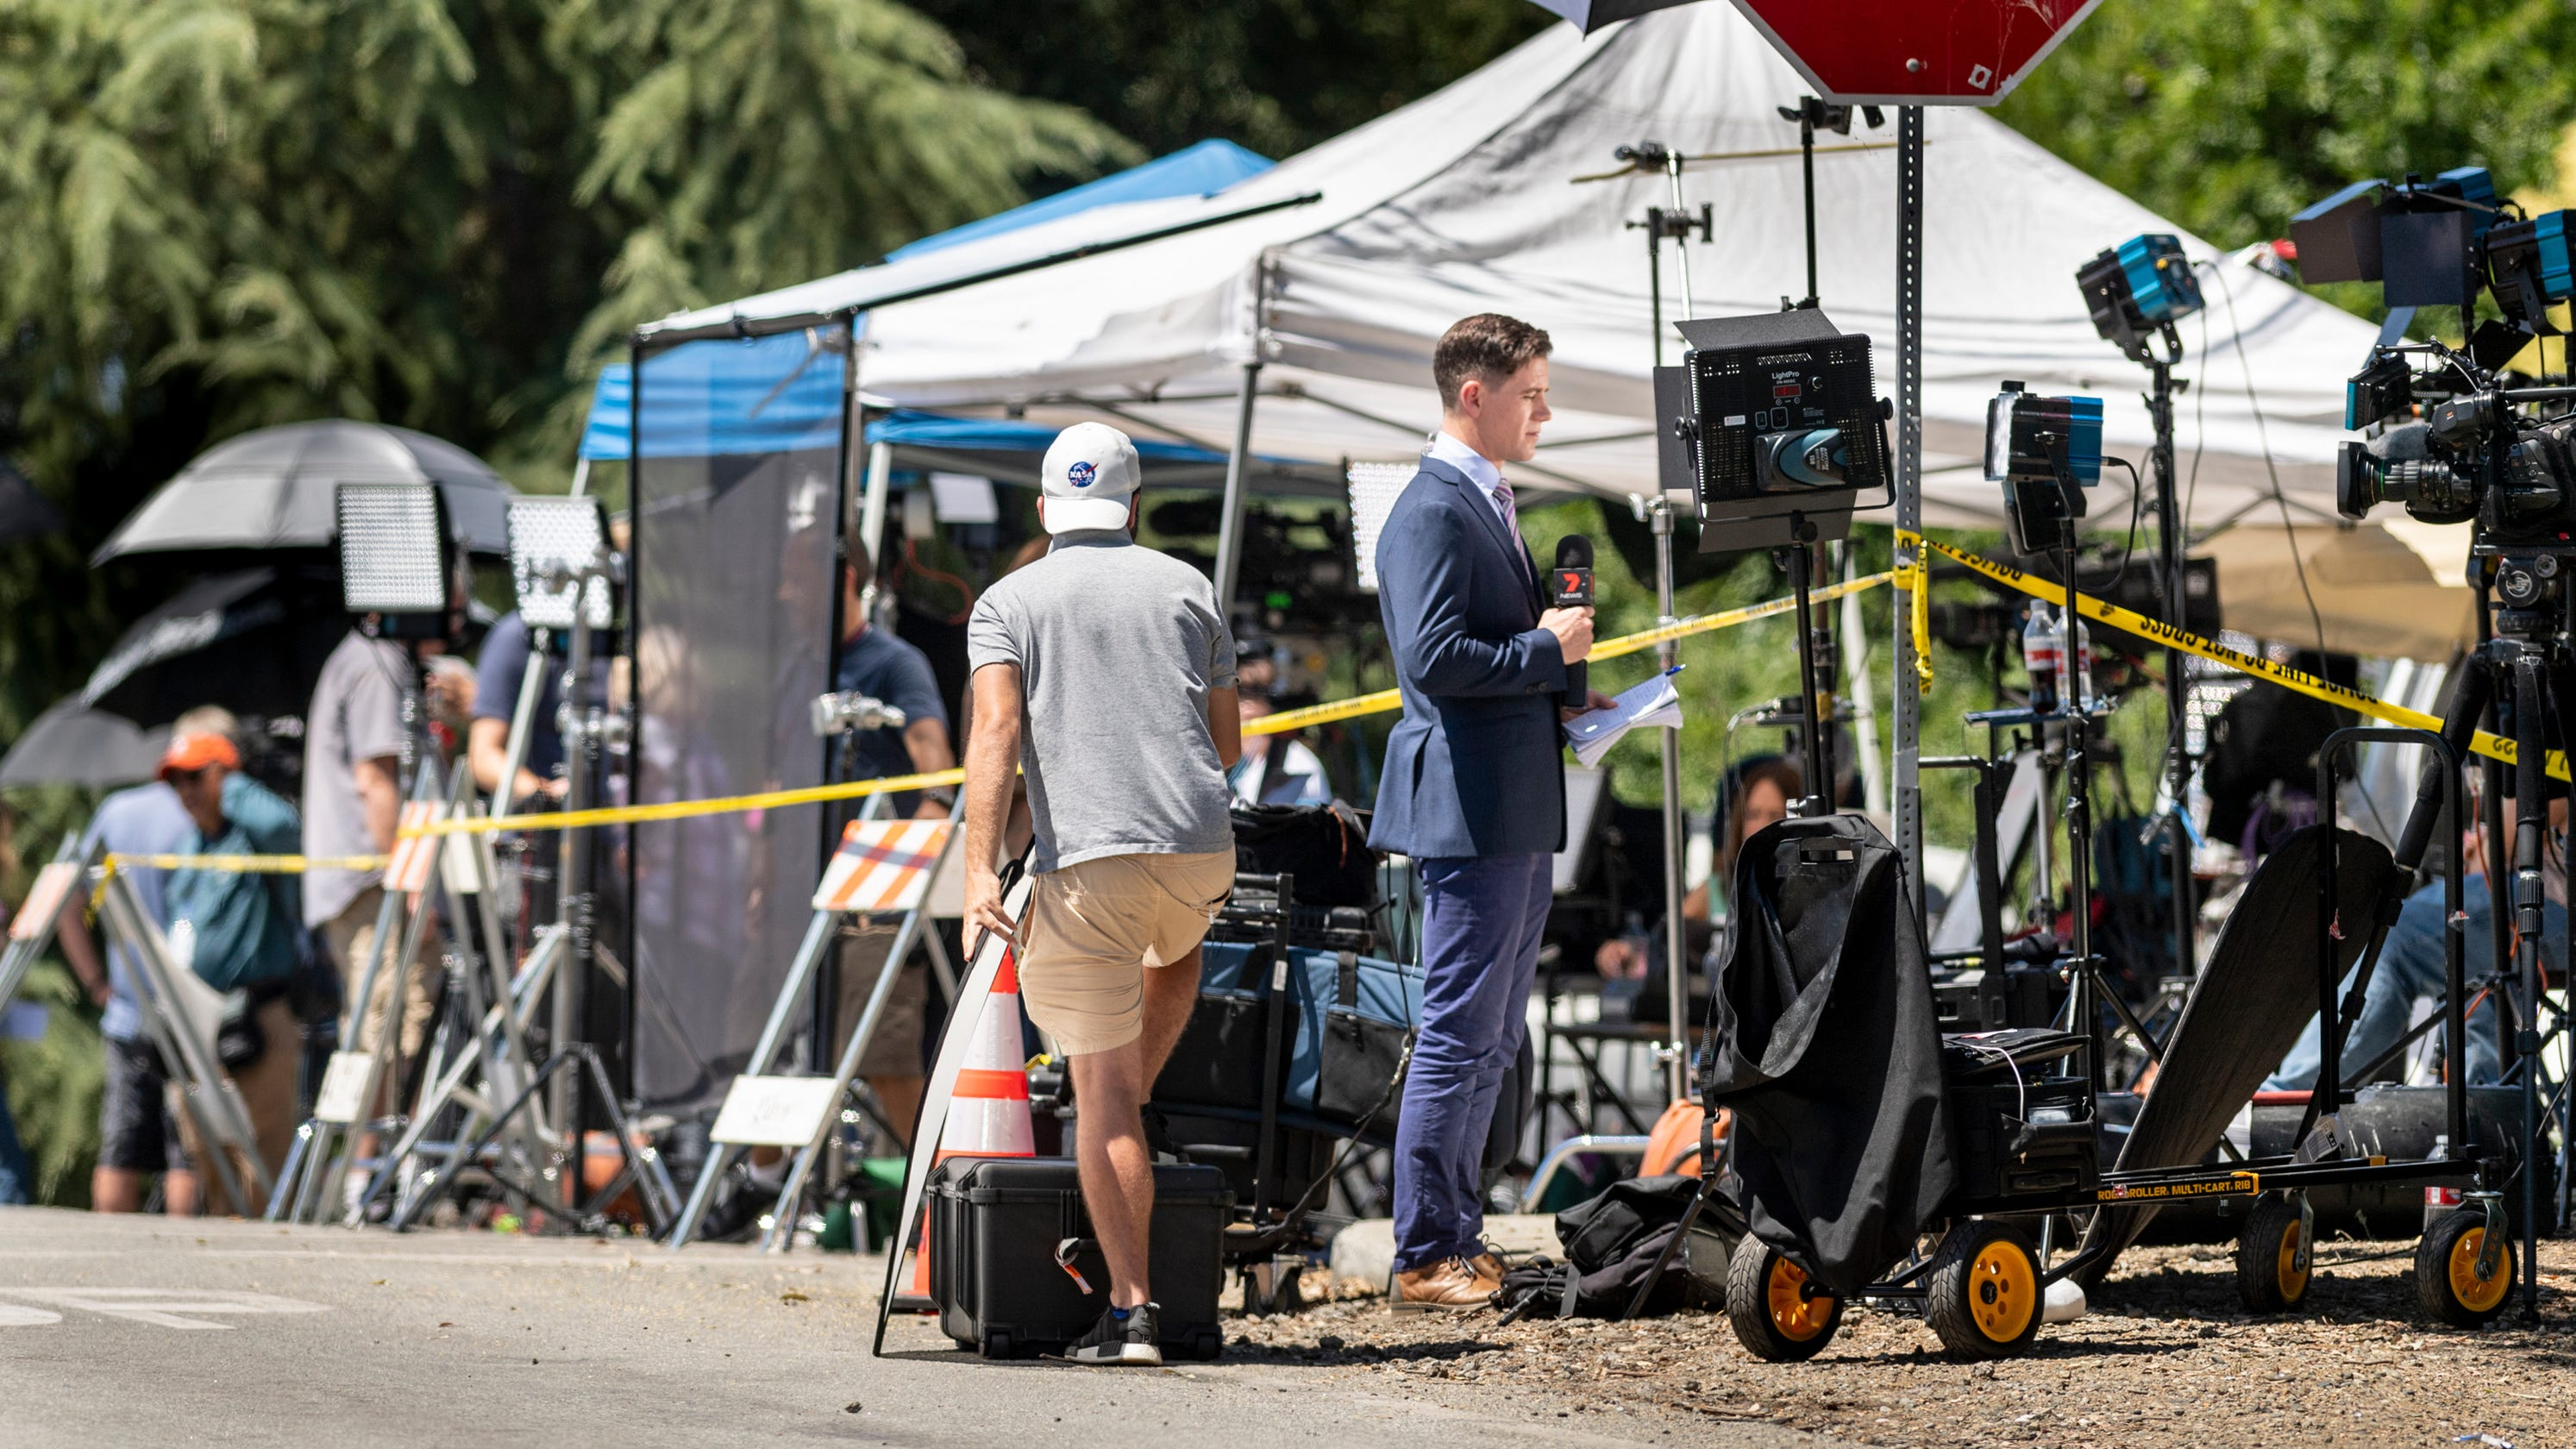 Media descent on Gilroy after festival shooting leaves some overwhelmed